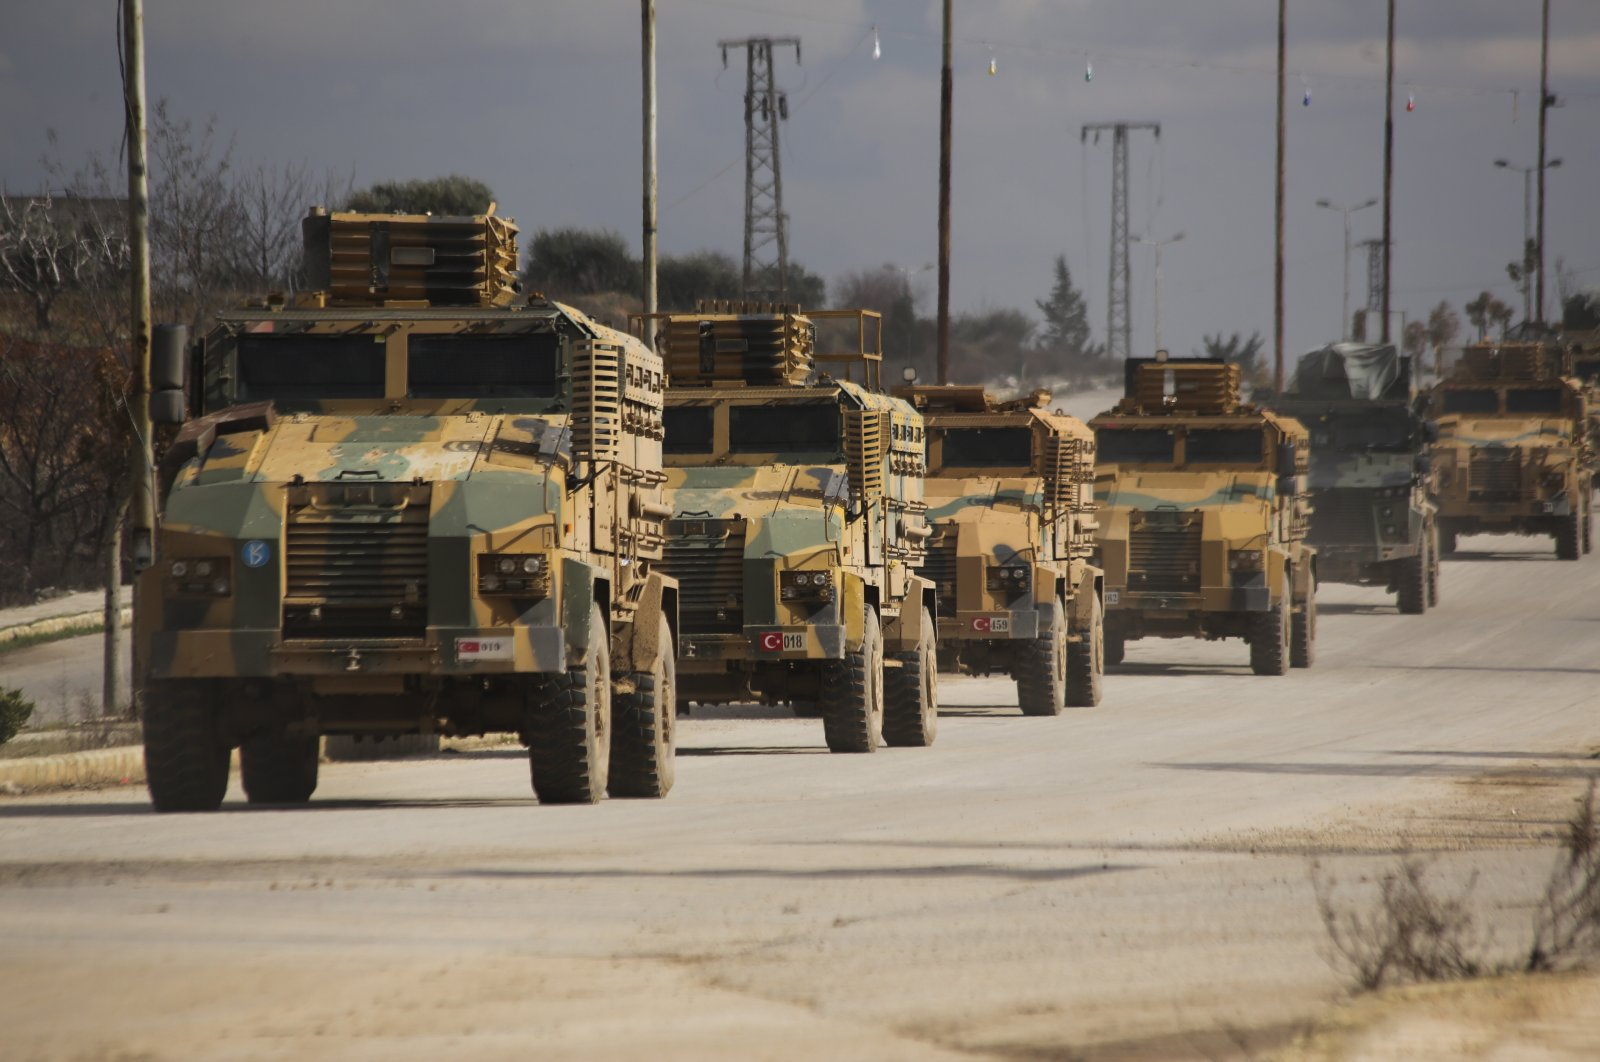 Turkish military convoy drives in Idlib province, Syria, Saturday, Feb. 22, 2020. (AP Photo)